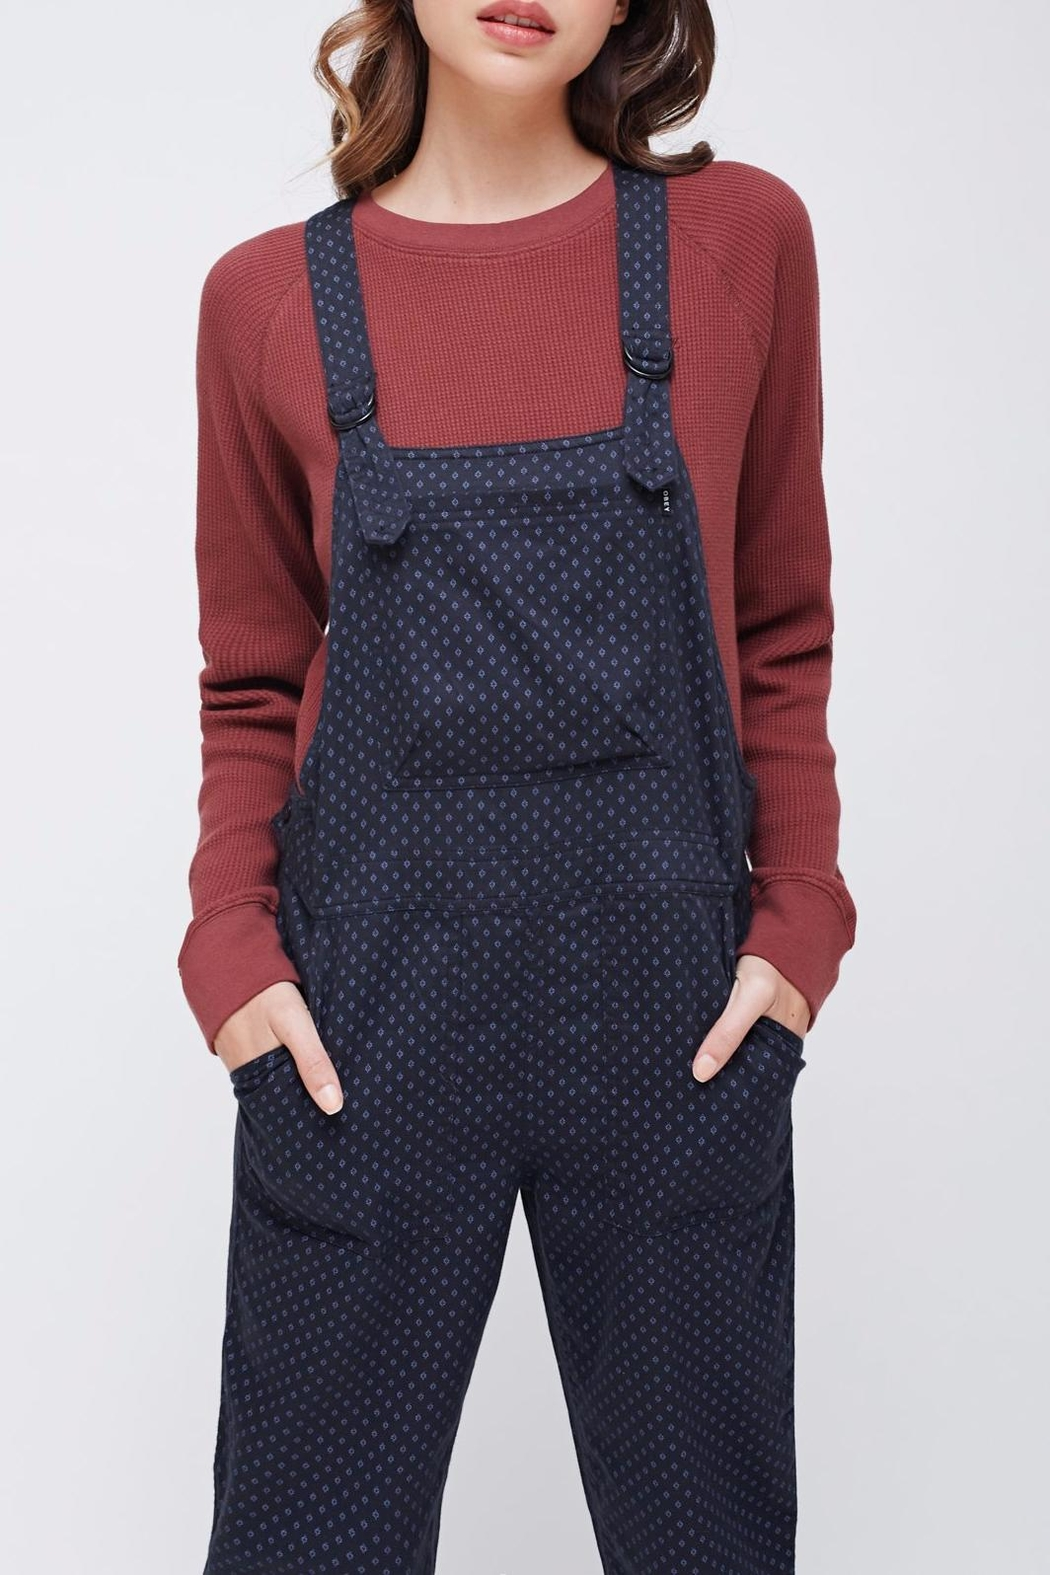 Obey Patterned Bib Overalls - Front Full Image